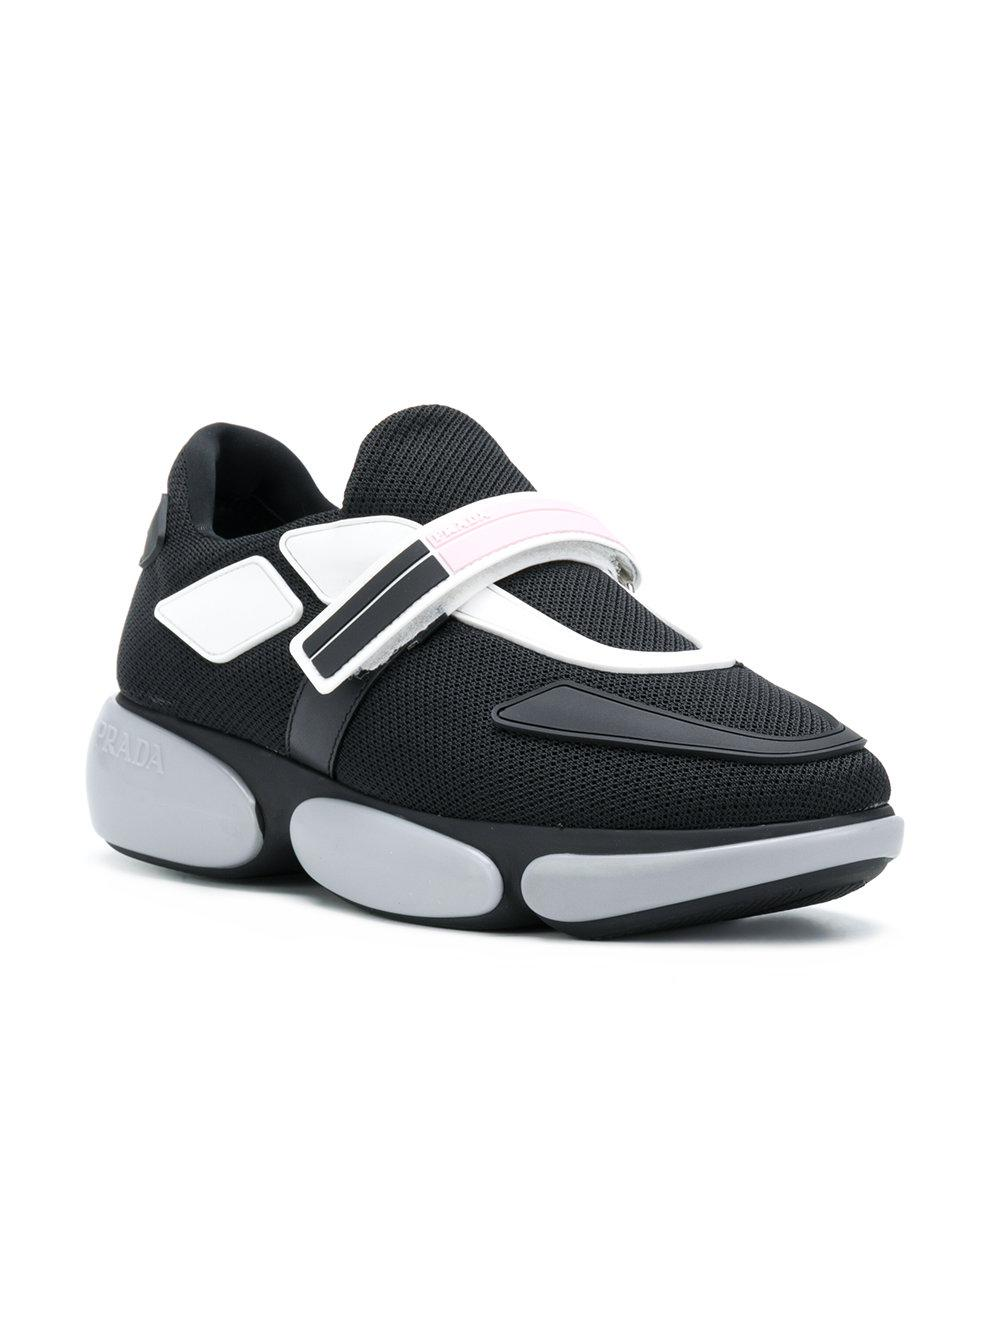 prada-black-panelled-runner-sneakers